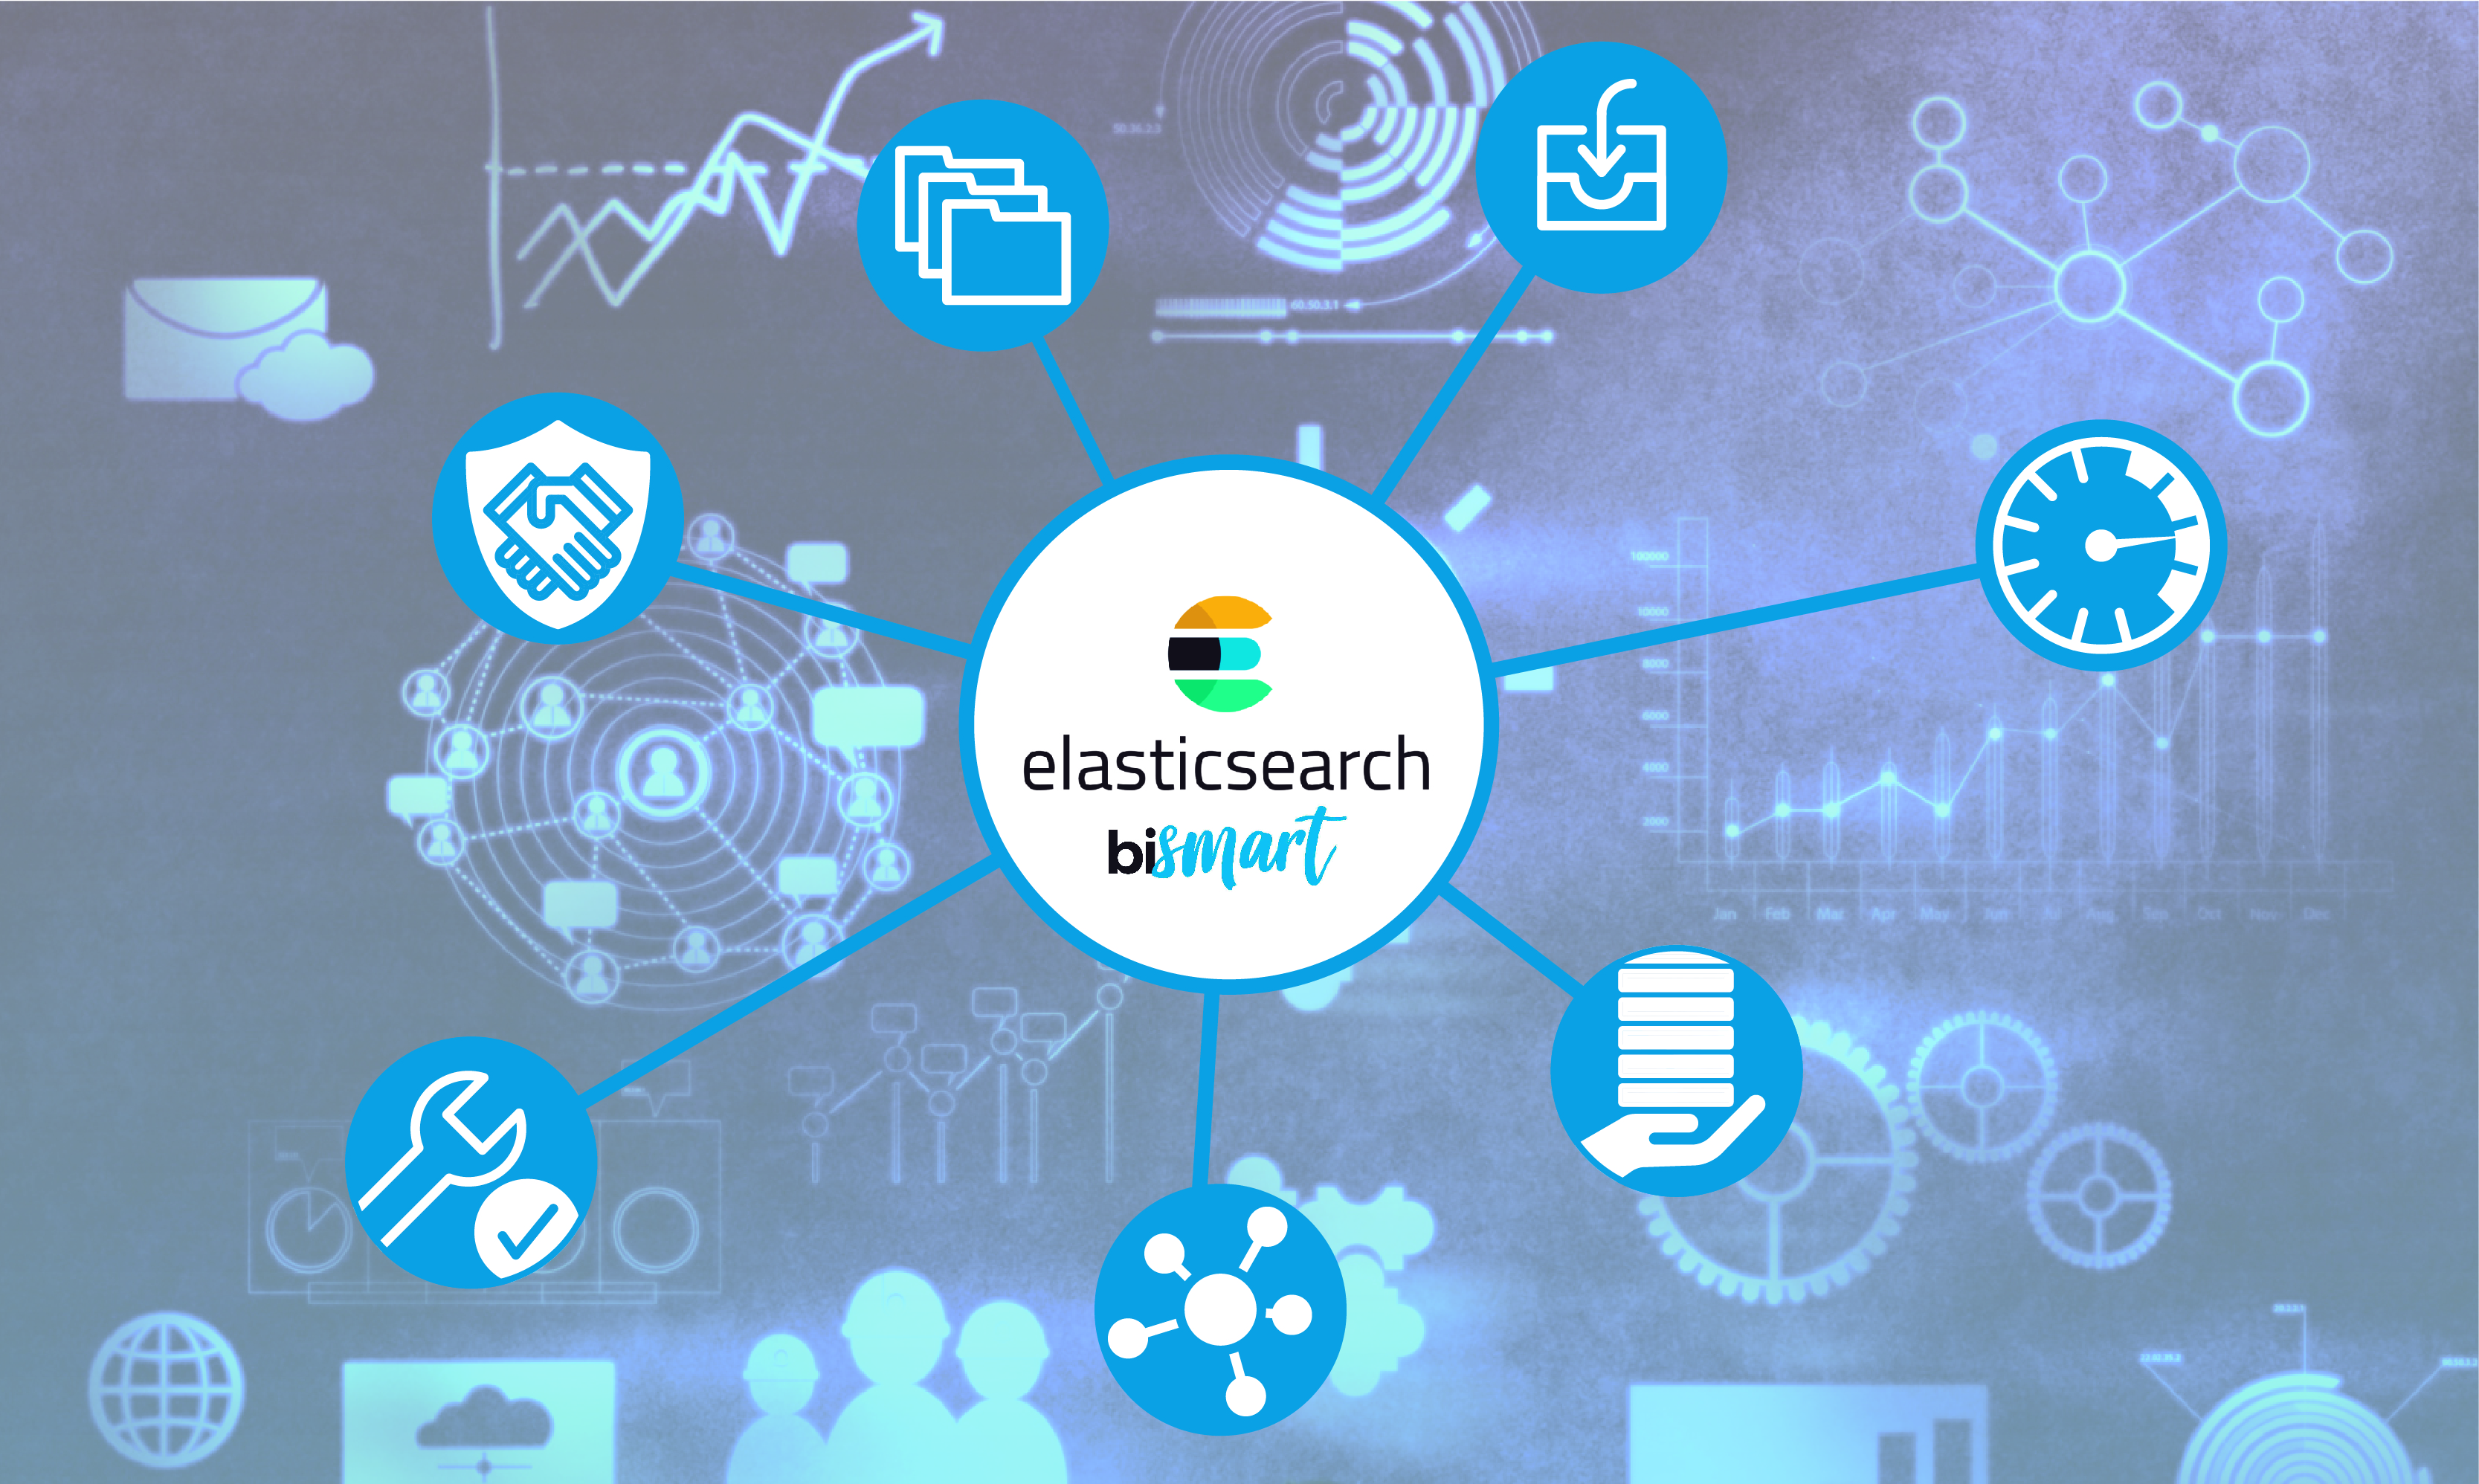 Elastic Search Bismart